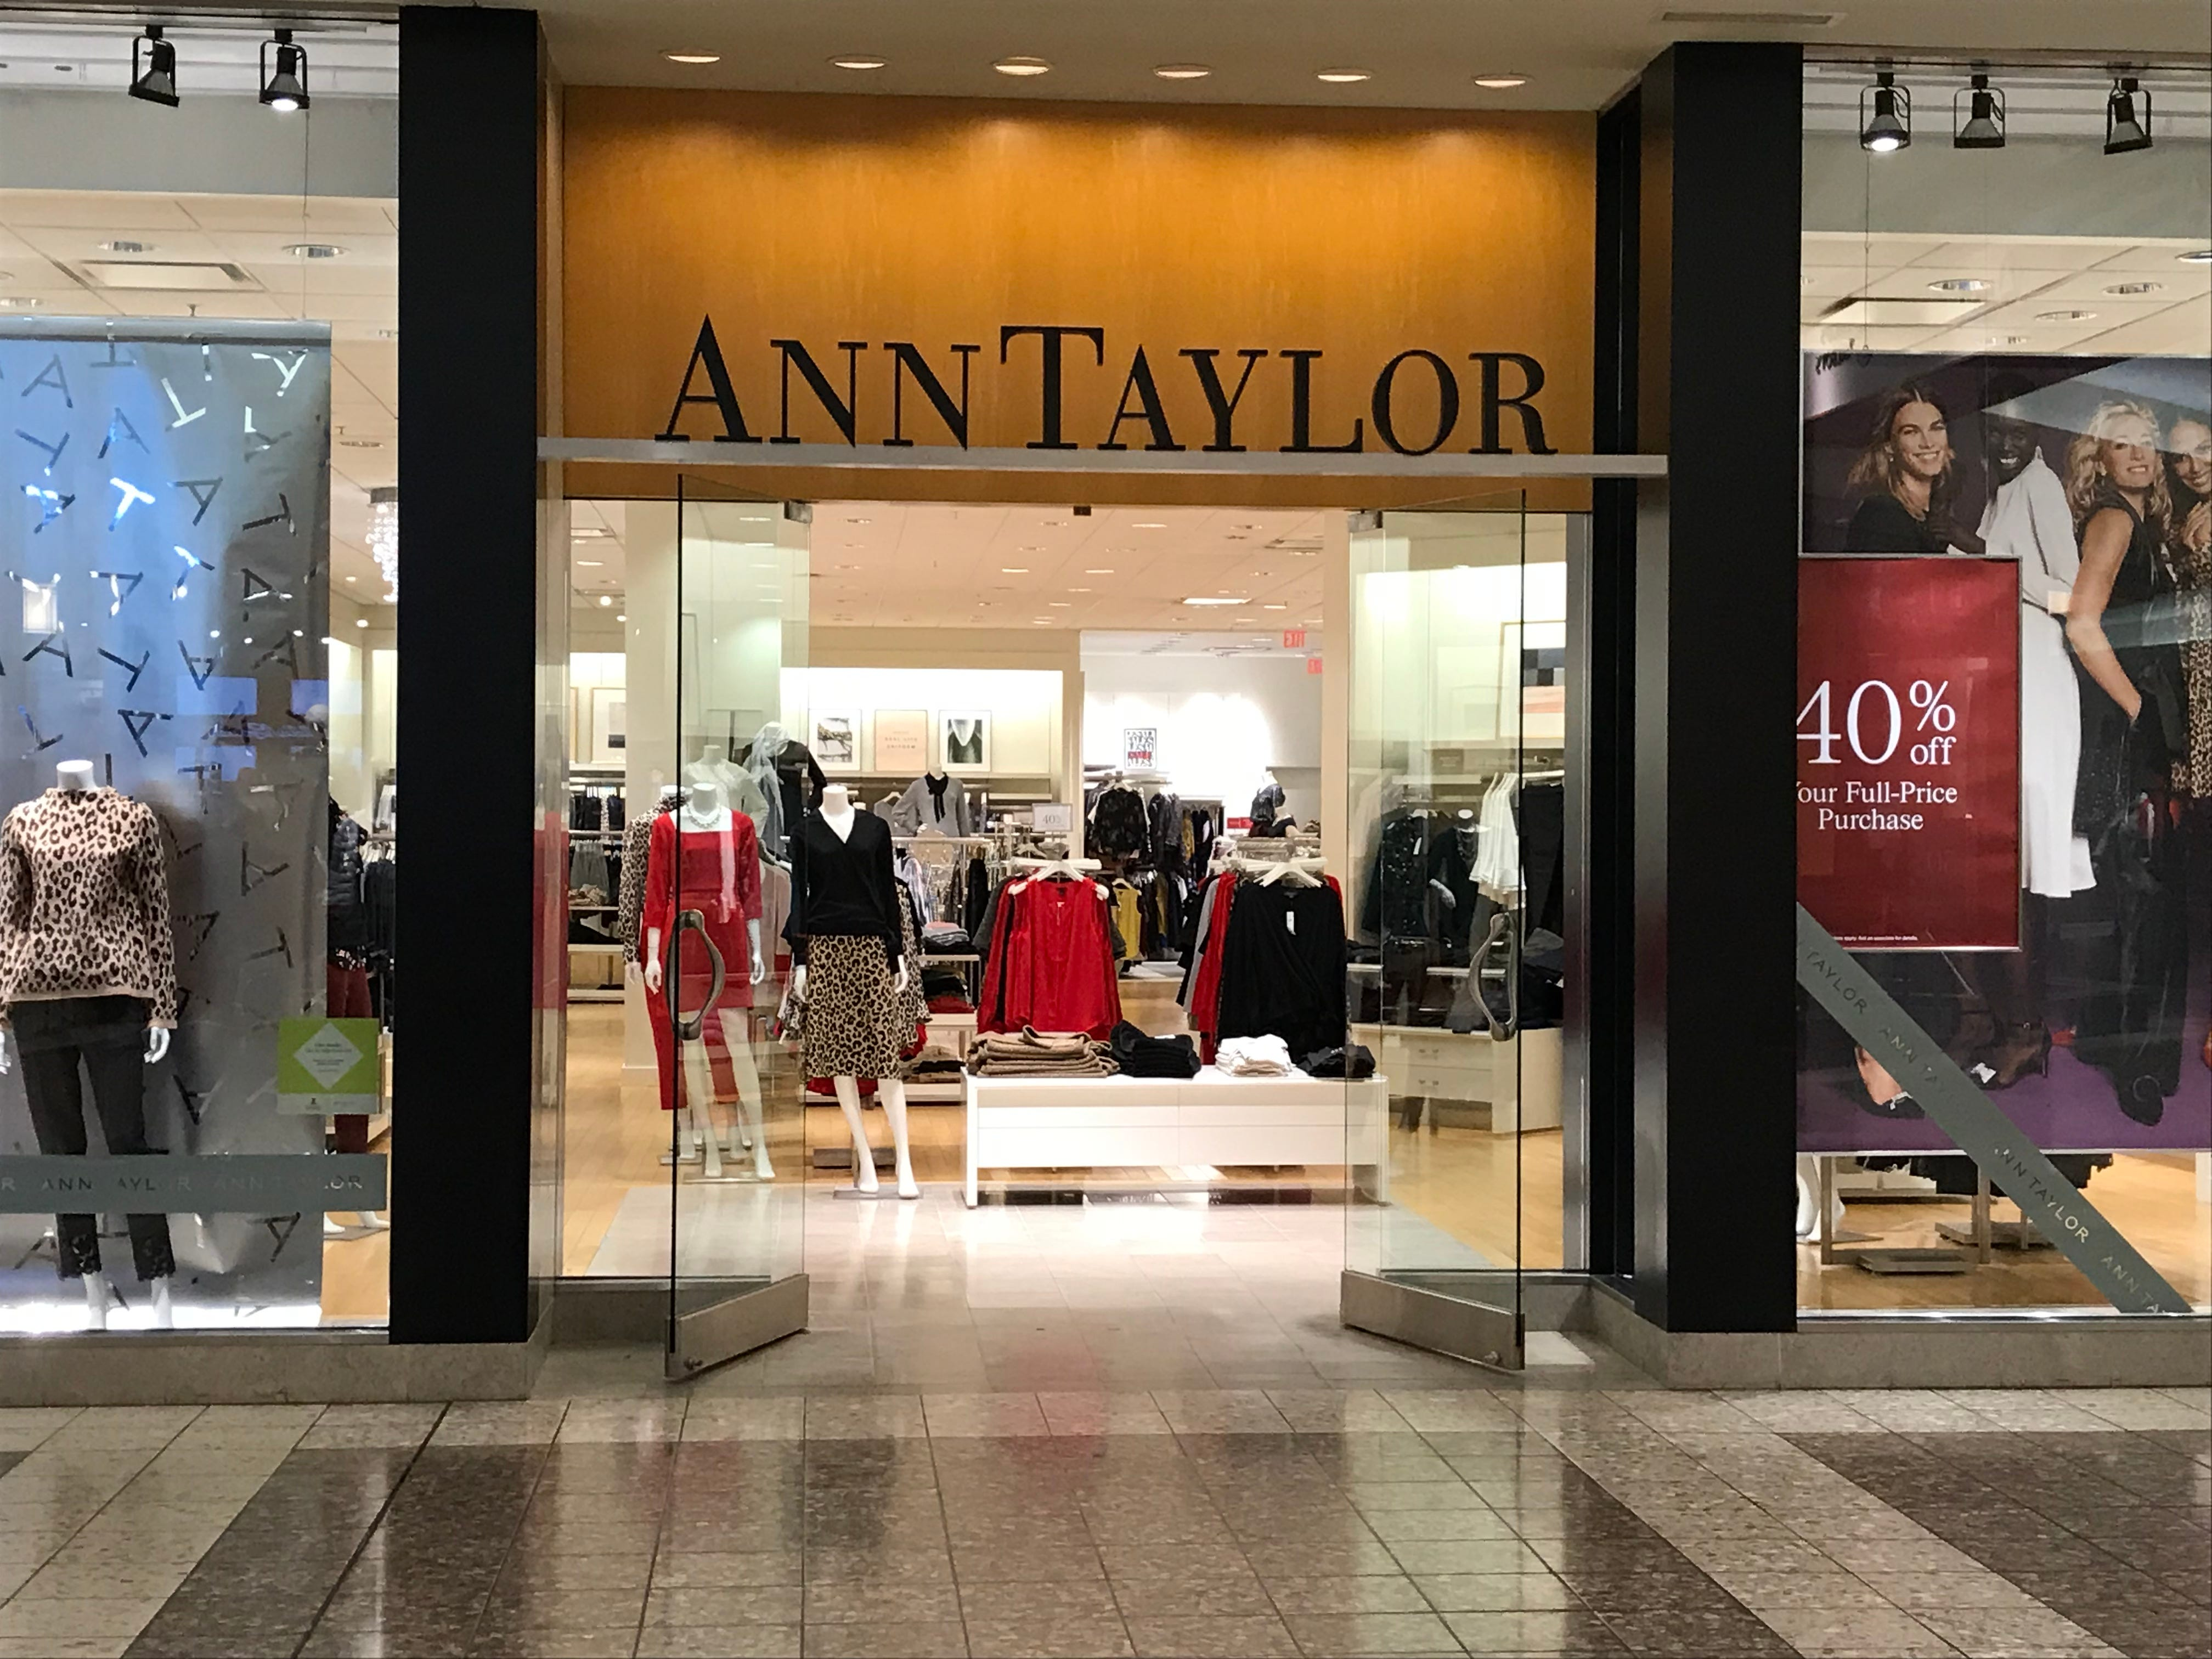 Lane Bryant, Ann Taylor owner files for bankruptcy protection due to COVID-19, plans to close 1,600 stores